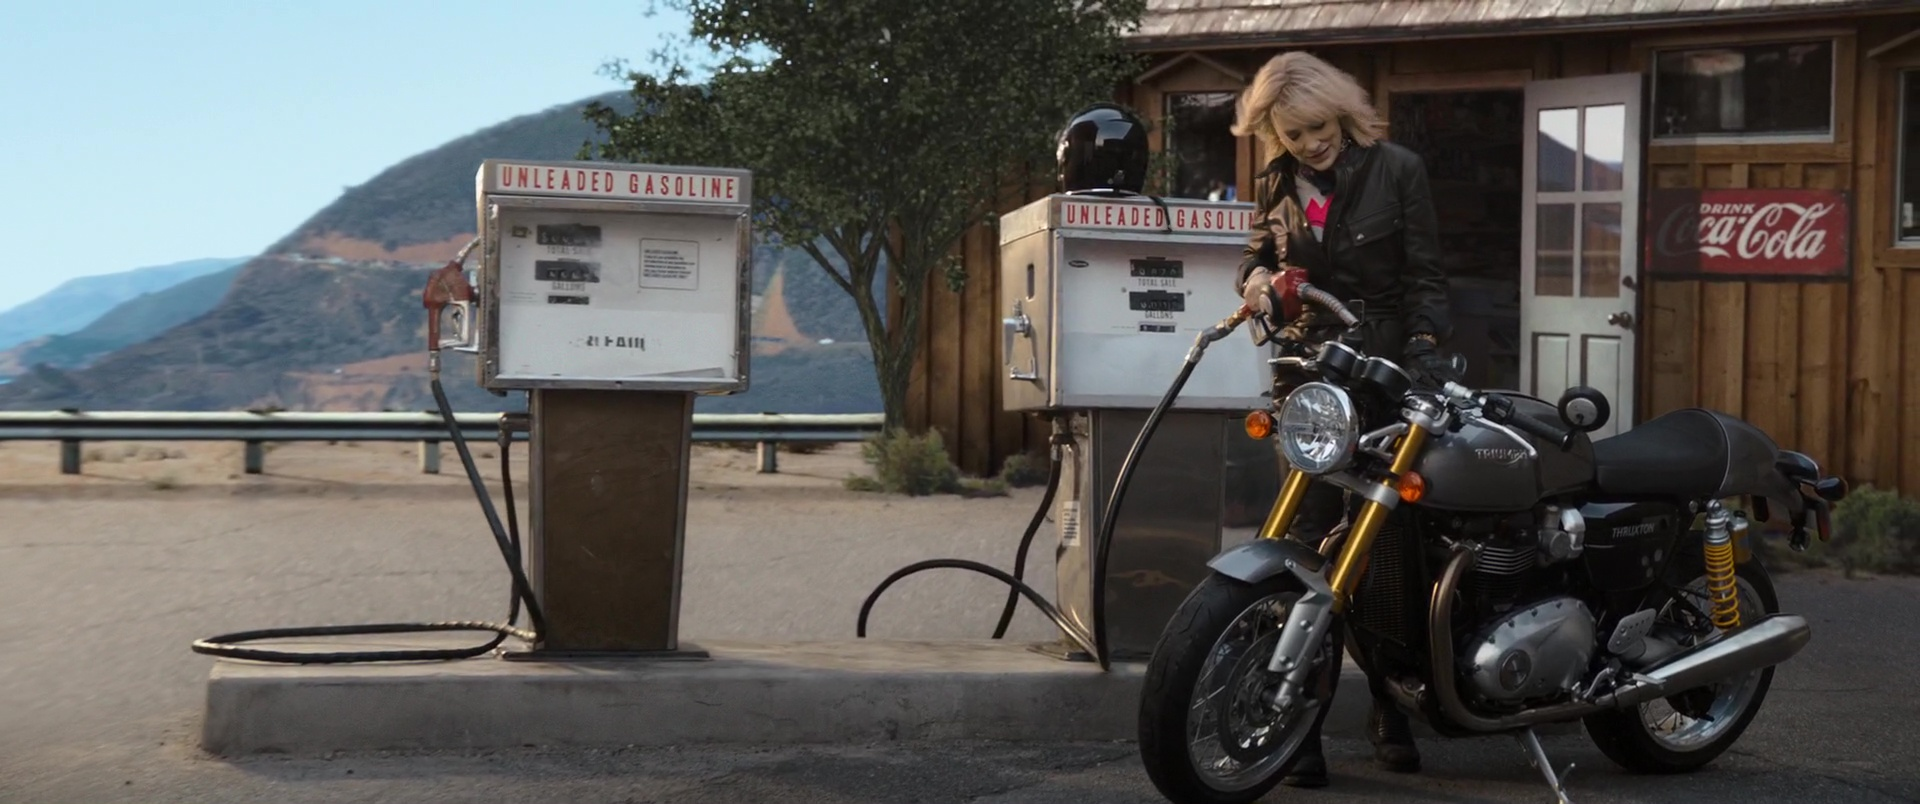 triumph motorcycle used by cate blanchett and cocacola